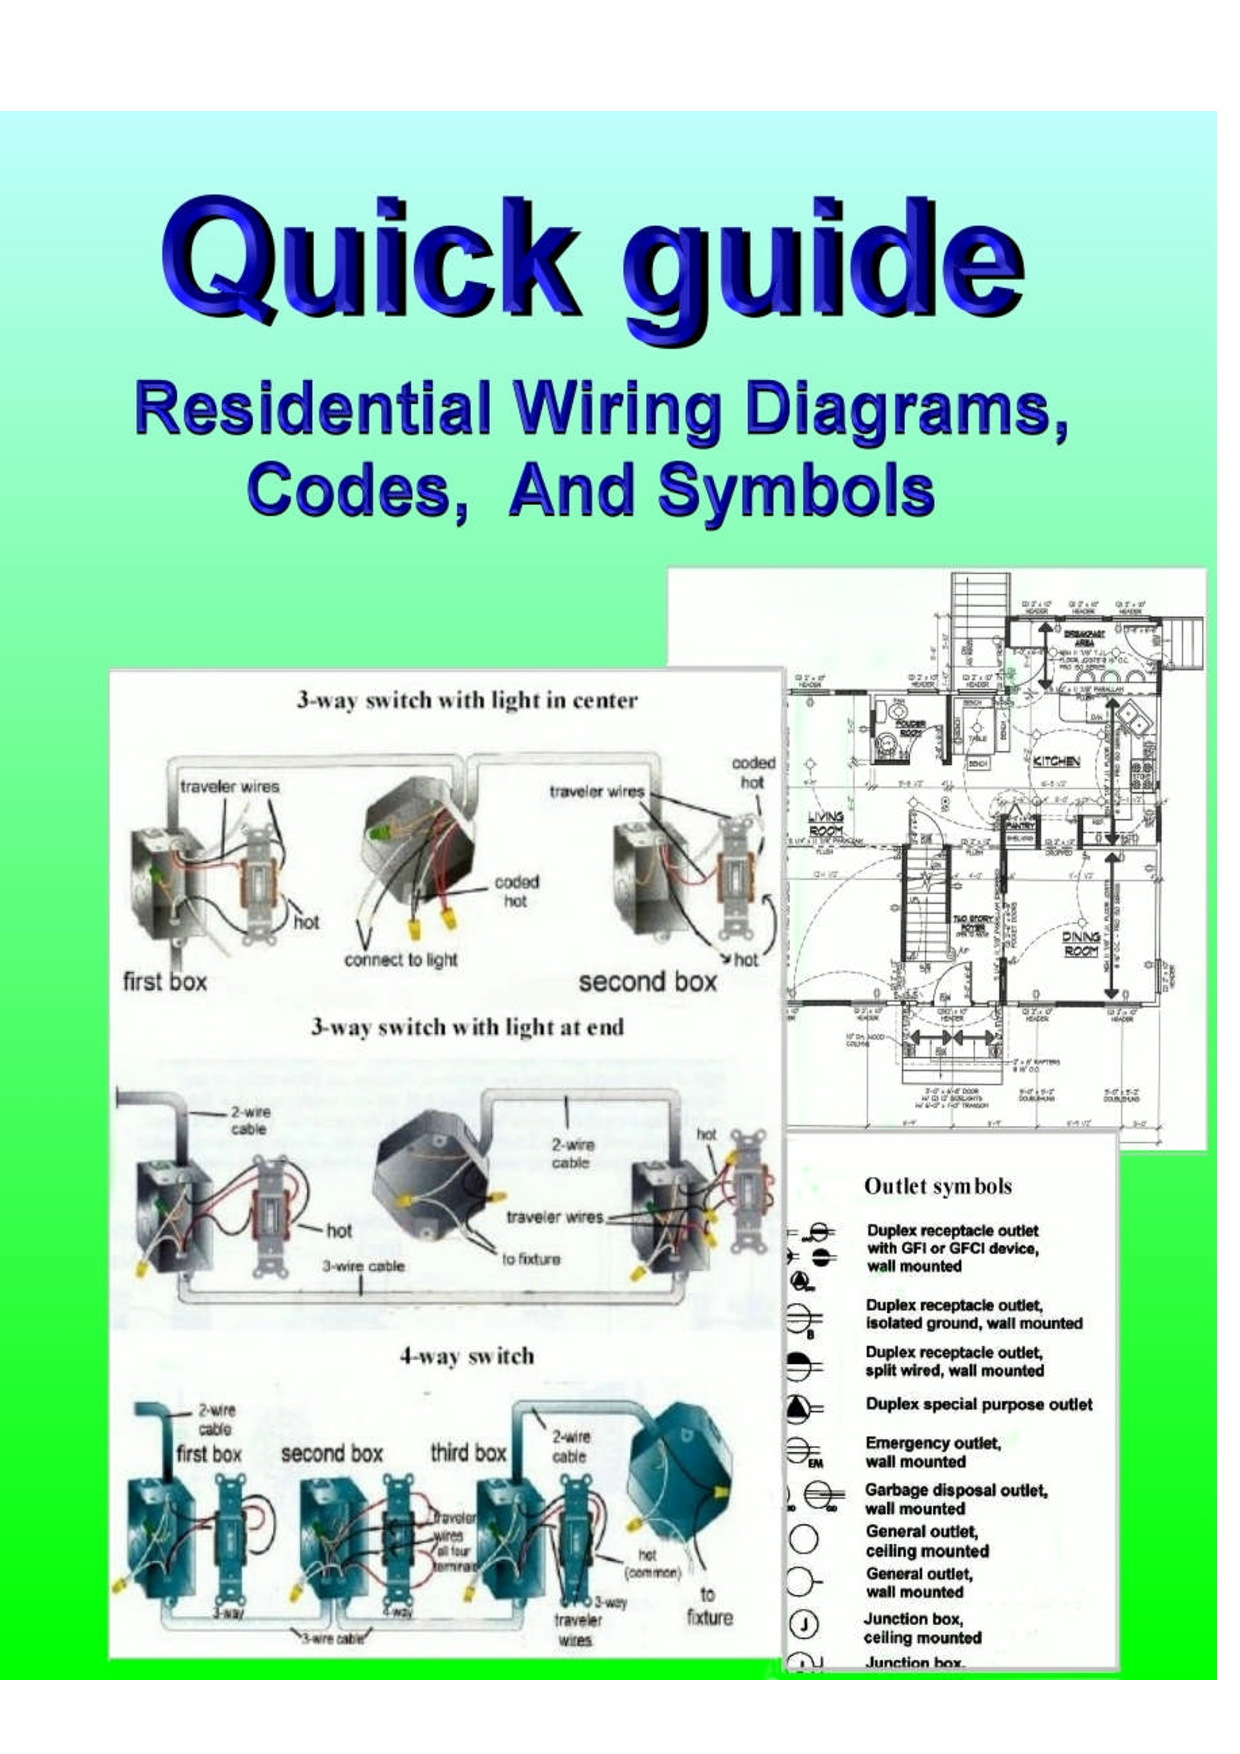 home electrical wiring diagrams pdf download legal documents 39 rh pinterest com modern residential wiring 2018 modern residential wiring 11th edition